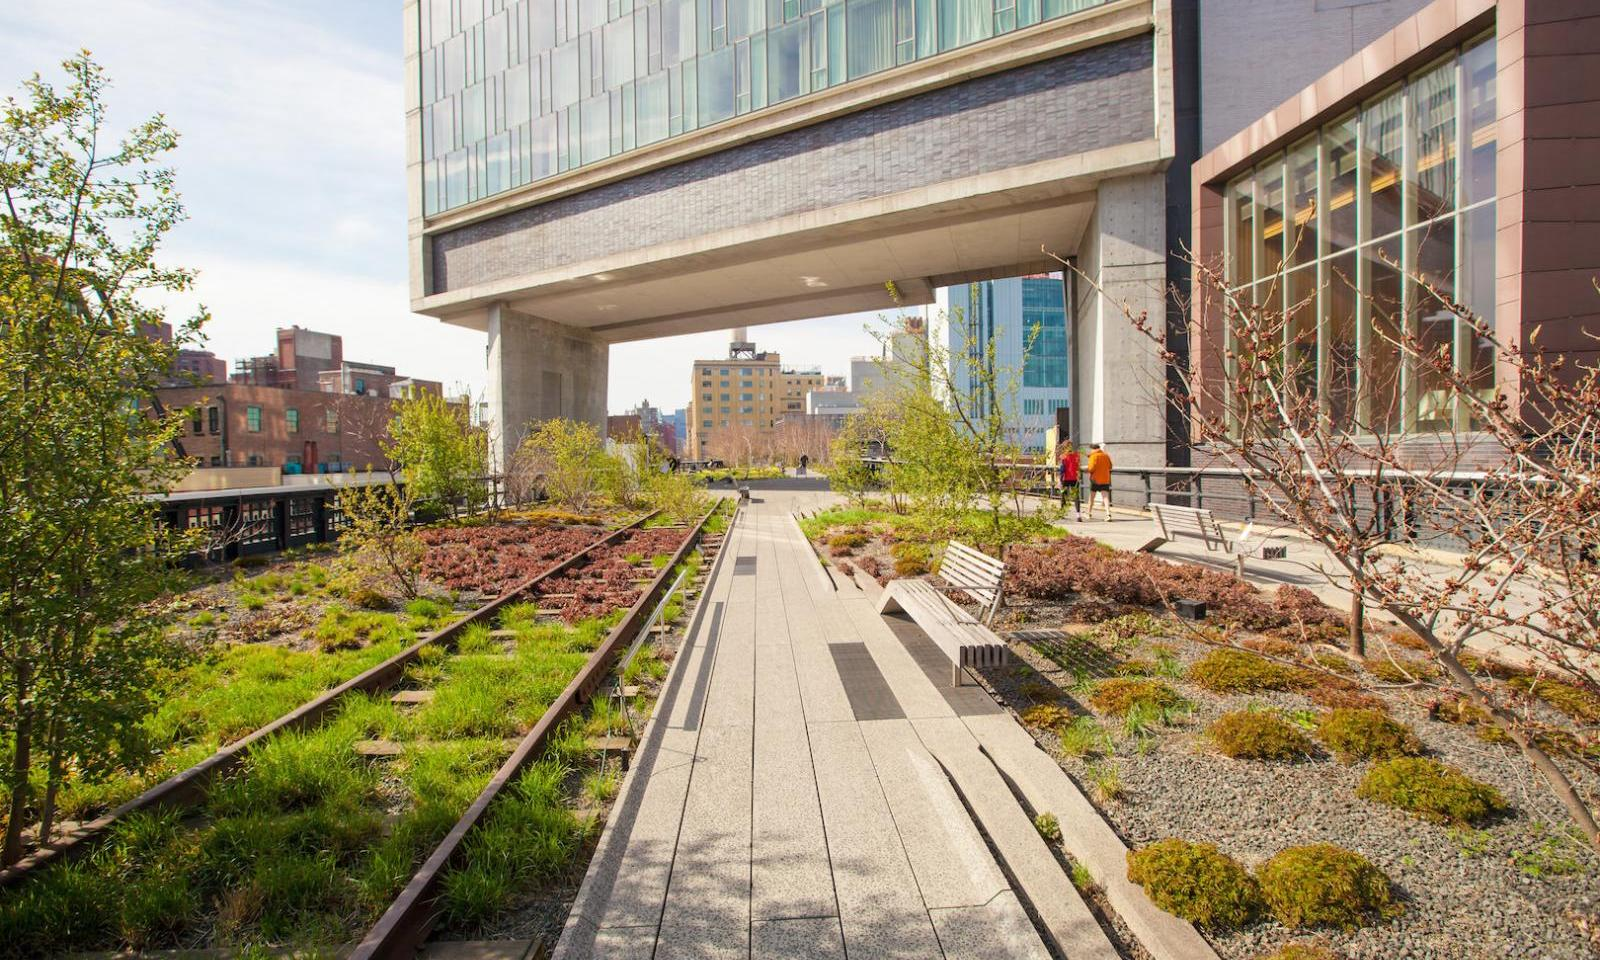 The High Line im Meatpacking District abril em nova york